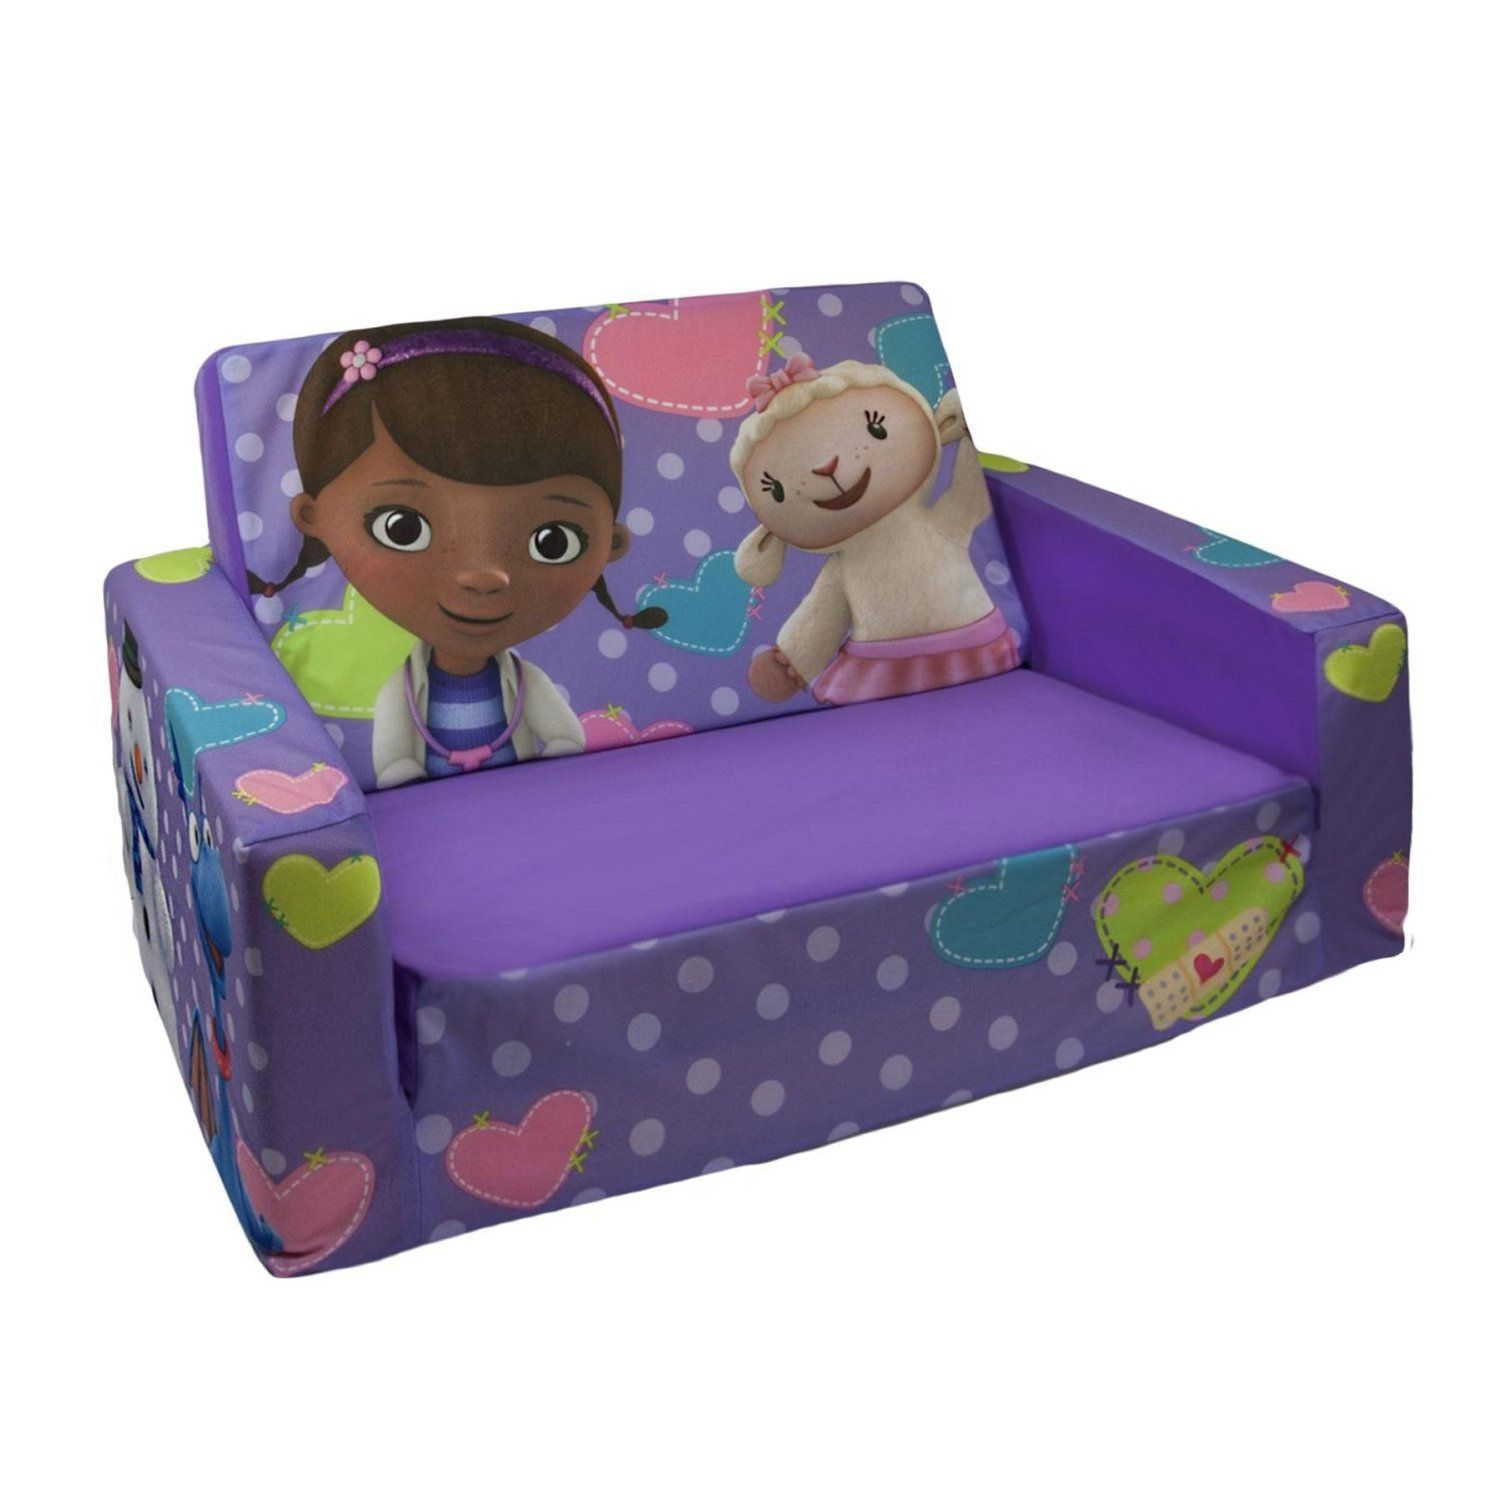 Kids Love Doc McStuffins Furniture Does She Love Doc McStuffins? Then These  Furniture Featuring Disneyu0027s Favorite Doctor Would Be Perfect For Her To  Have At ...